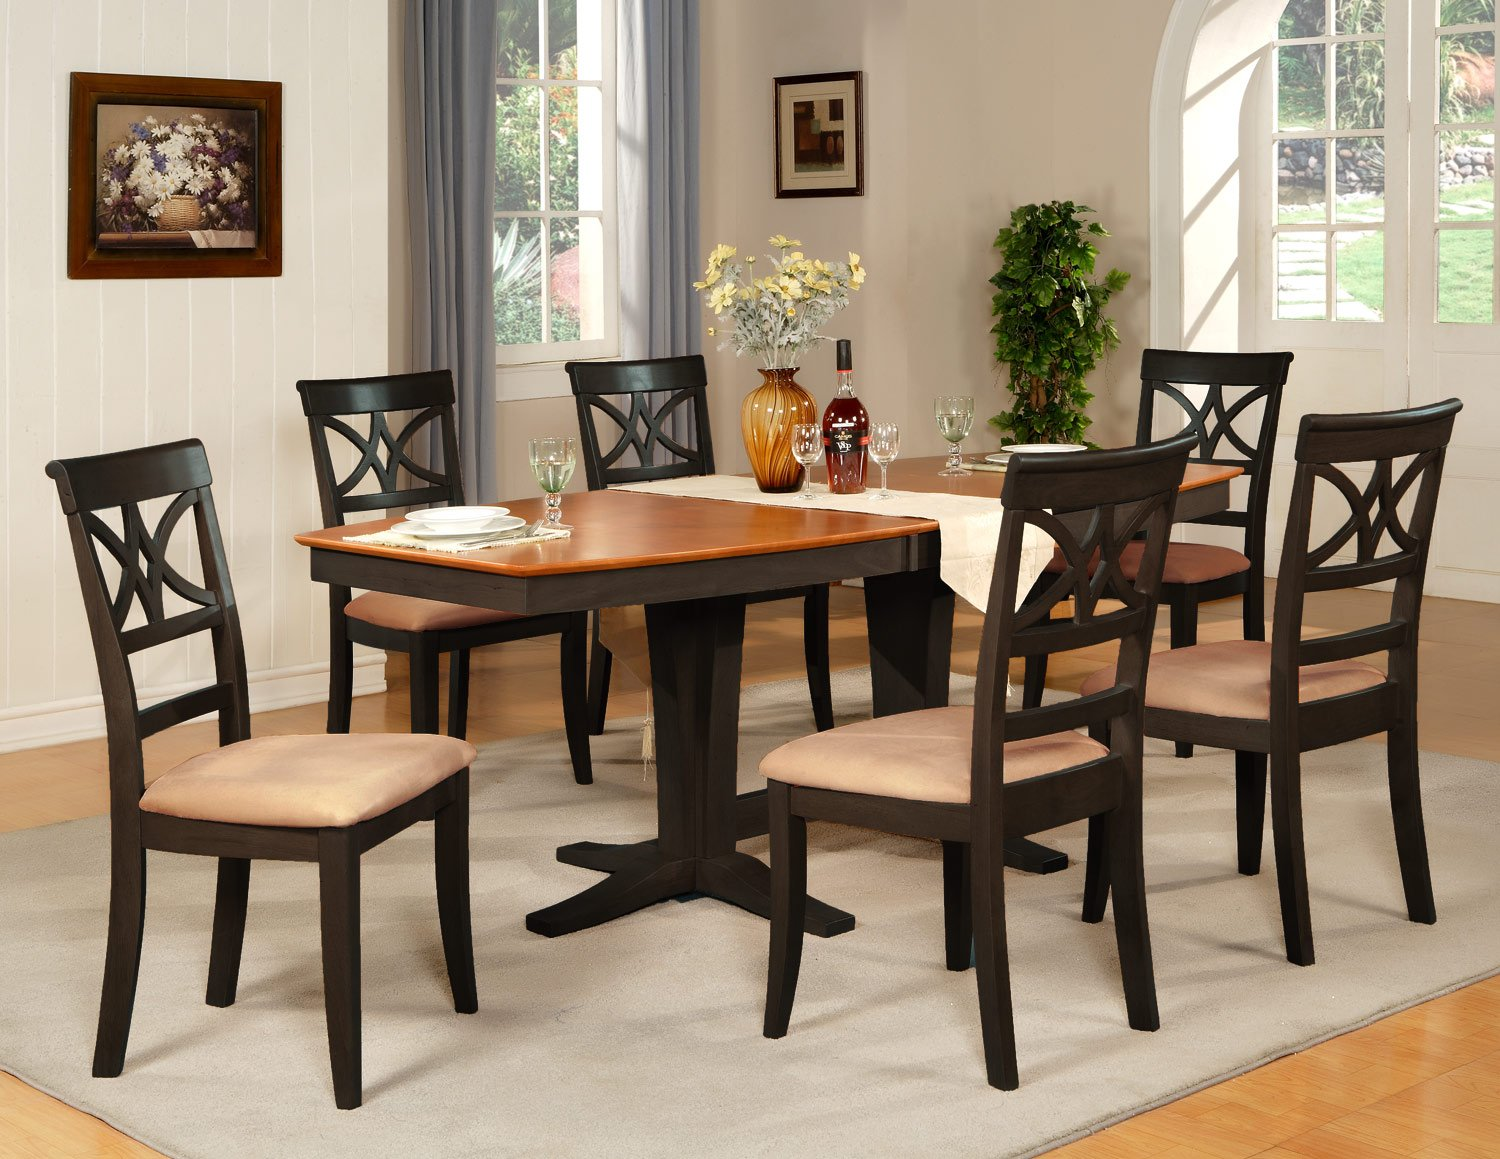 Ellington 7-Pc Dining Table Set-40�X82�-extension leaf- in Black & Cherry.  SKU: EL7-BLK-C